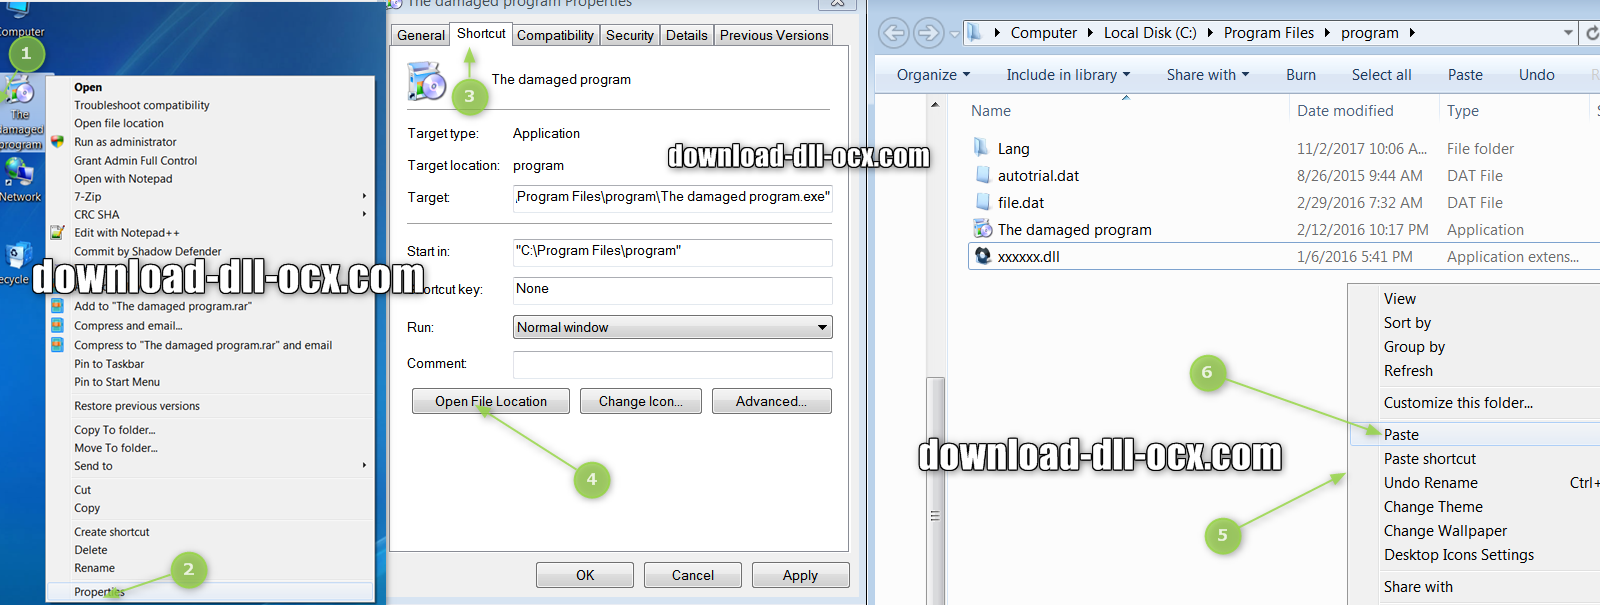 how to install uconv.dll file? for fix missing